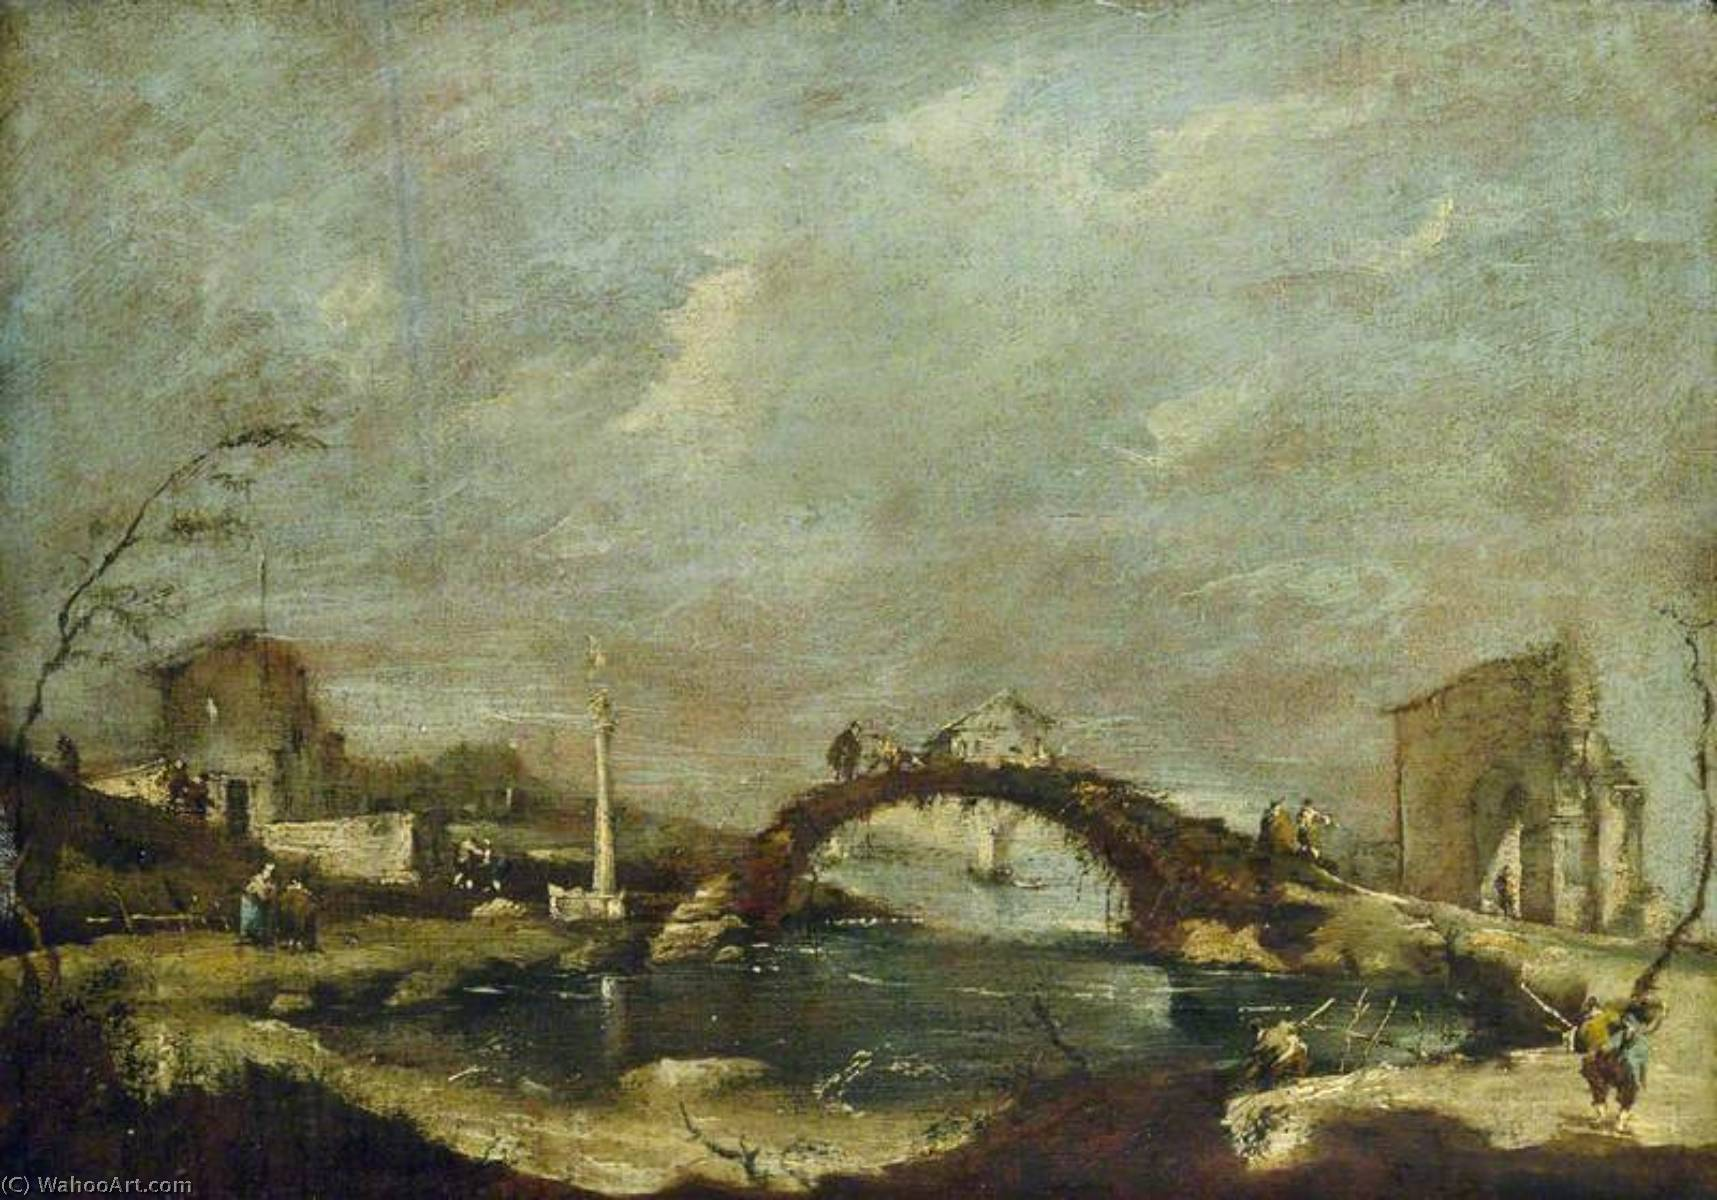 Capriccio Paisaje, oleo en panel de Francesco Lazzaro Guardi (1712-1793, Italy)